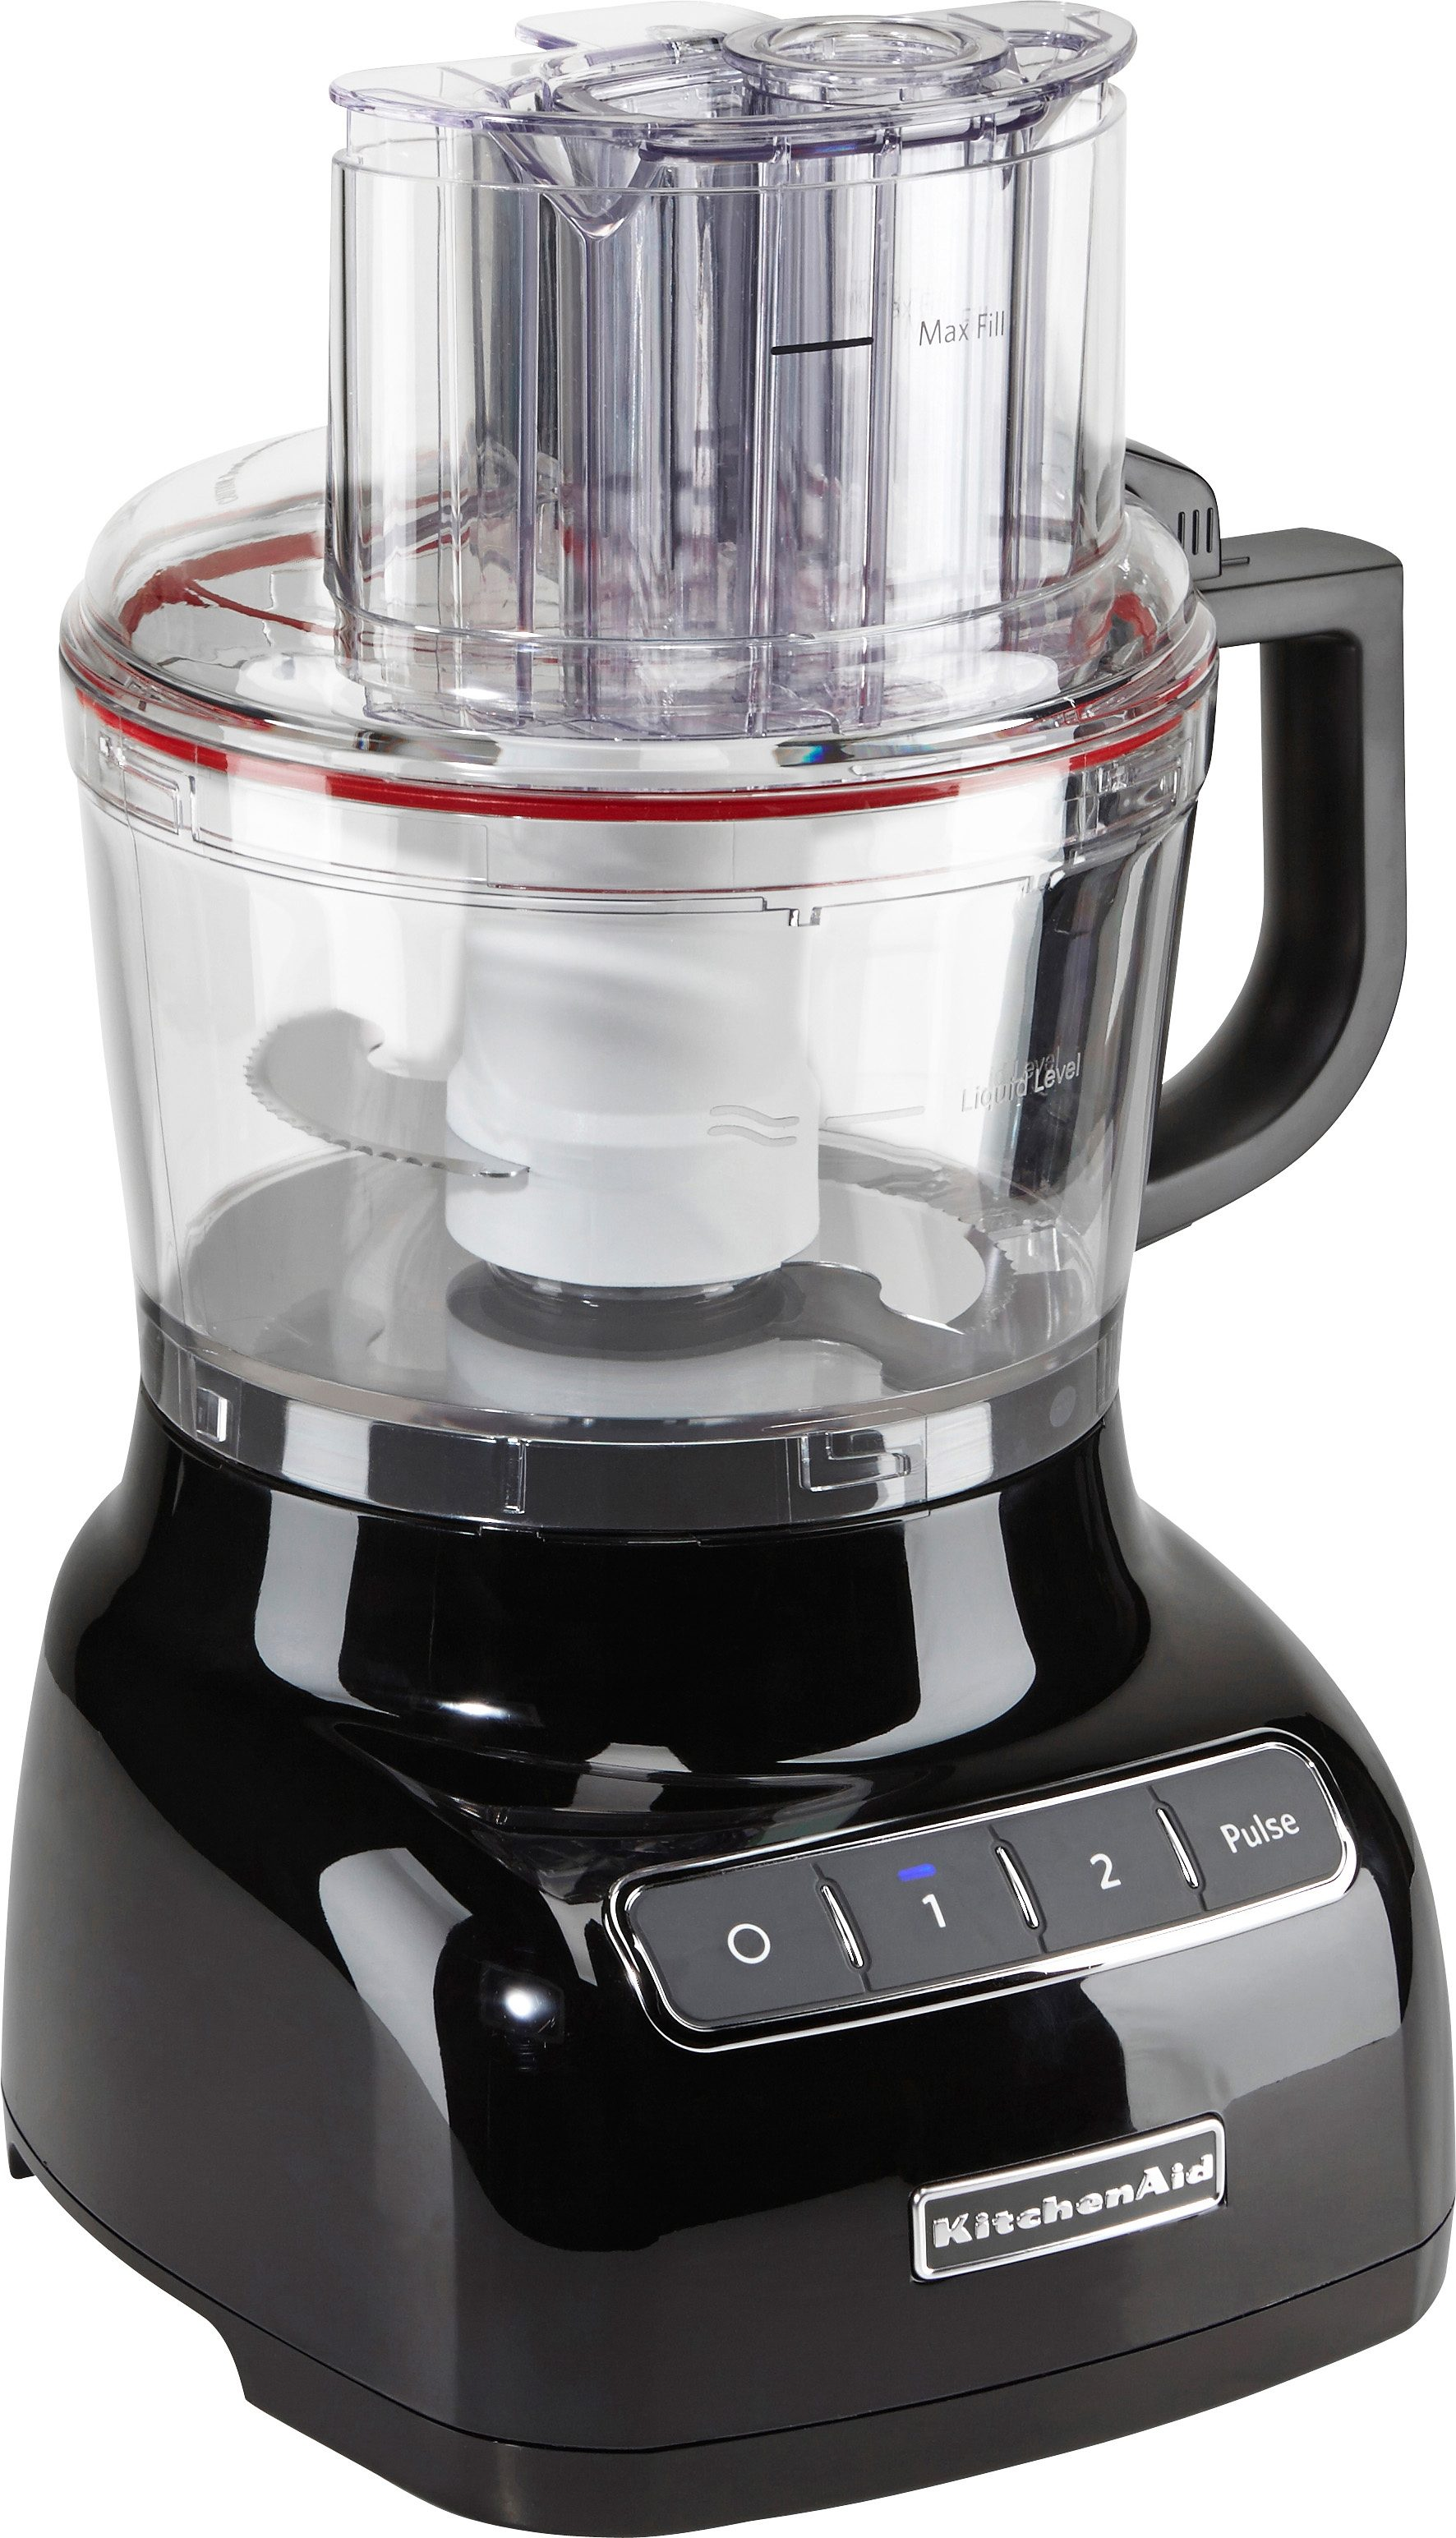 KitchenAid Artisan Food Processor 5KFP0925EOB, 2,1 Liter, onyx schwarz